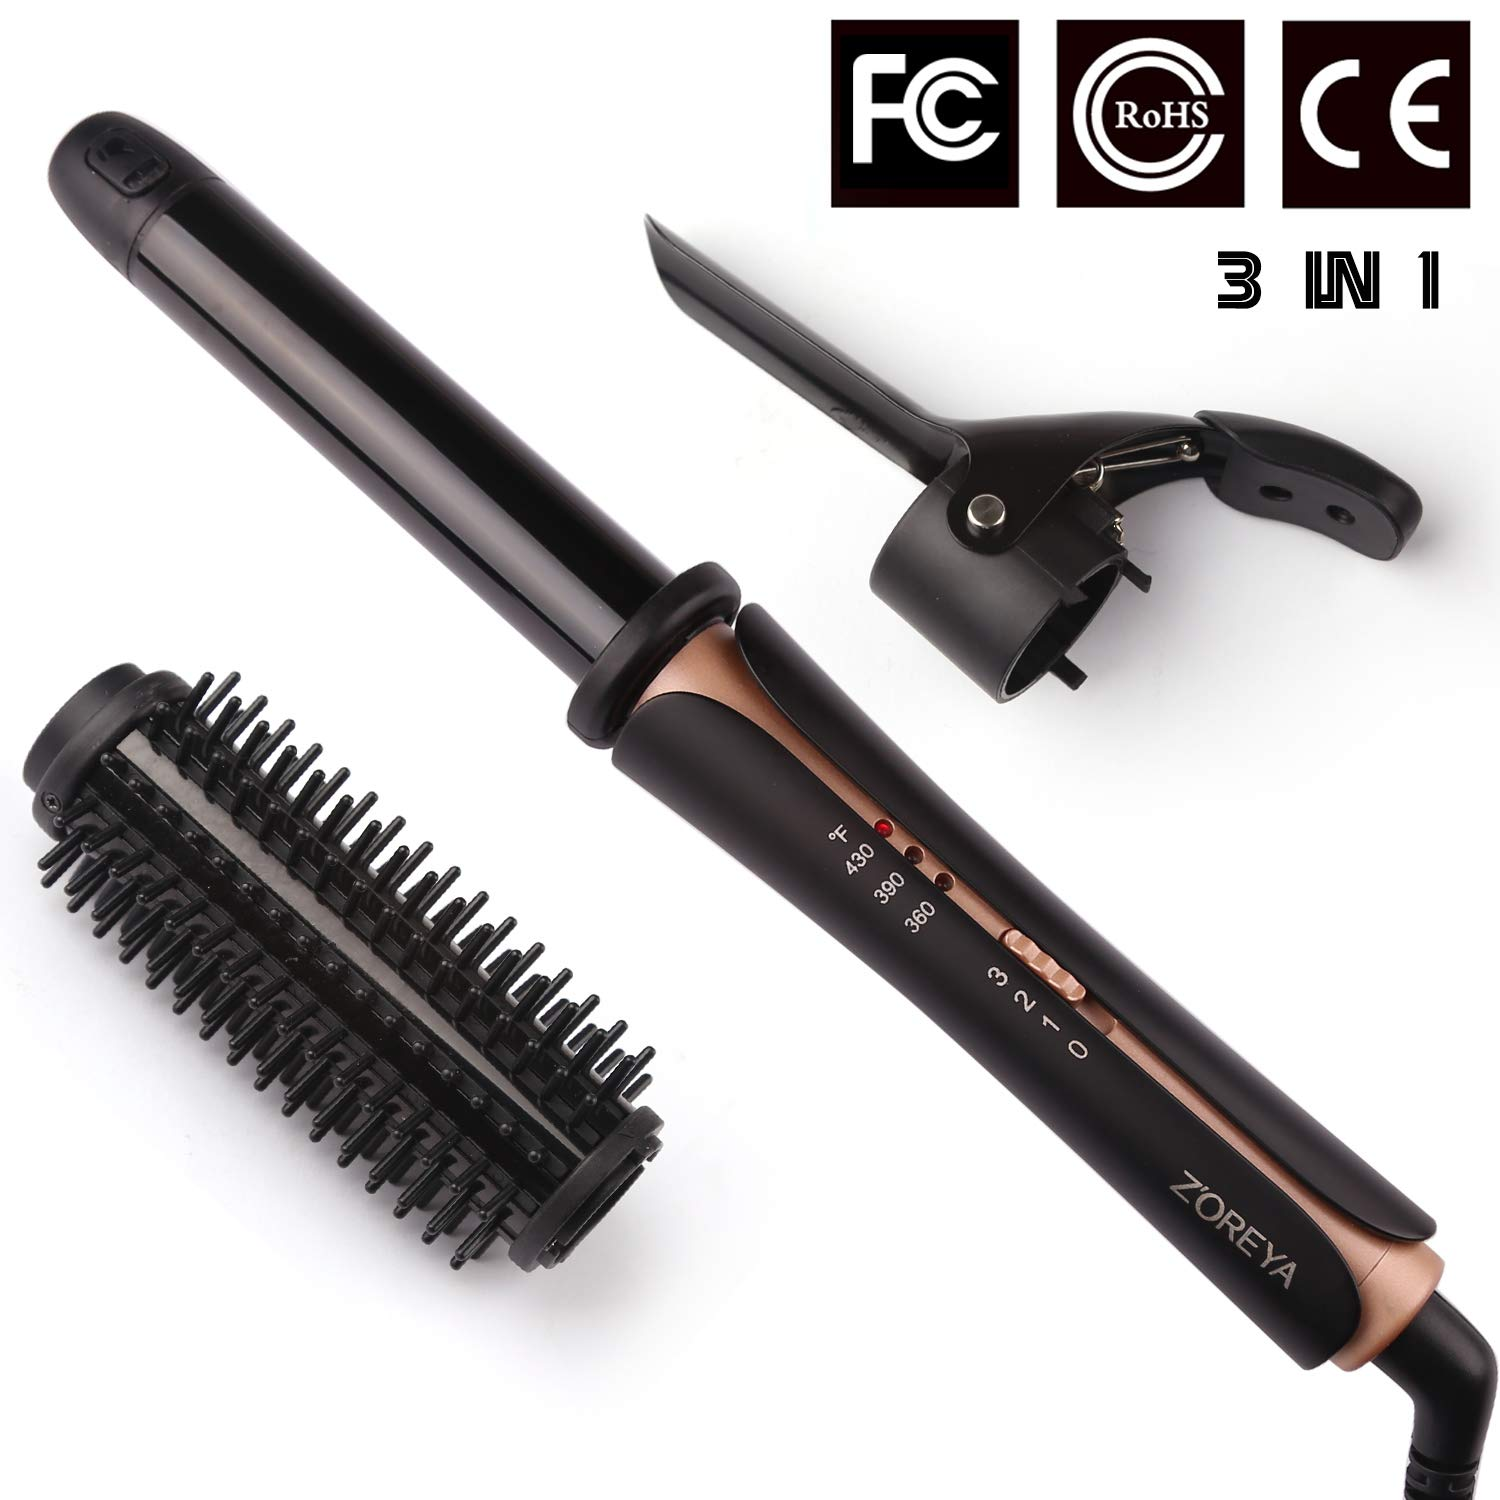 Curling Iron ZOREYA 3-in-1 Hair Instant Heat Curler Brush 1.25 Inch Ionic Hot Brush Dual Voltage Straightening Brush LED Display Hair Curling Iron Curling Wands Heated Styler Brush Auto Shut Off